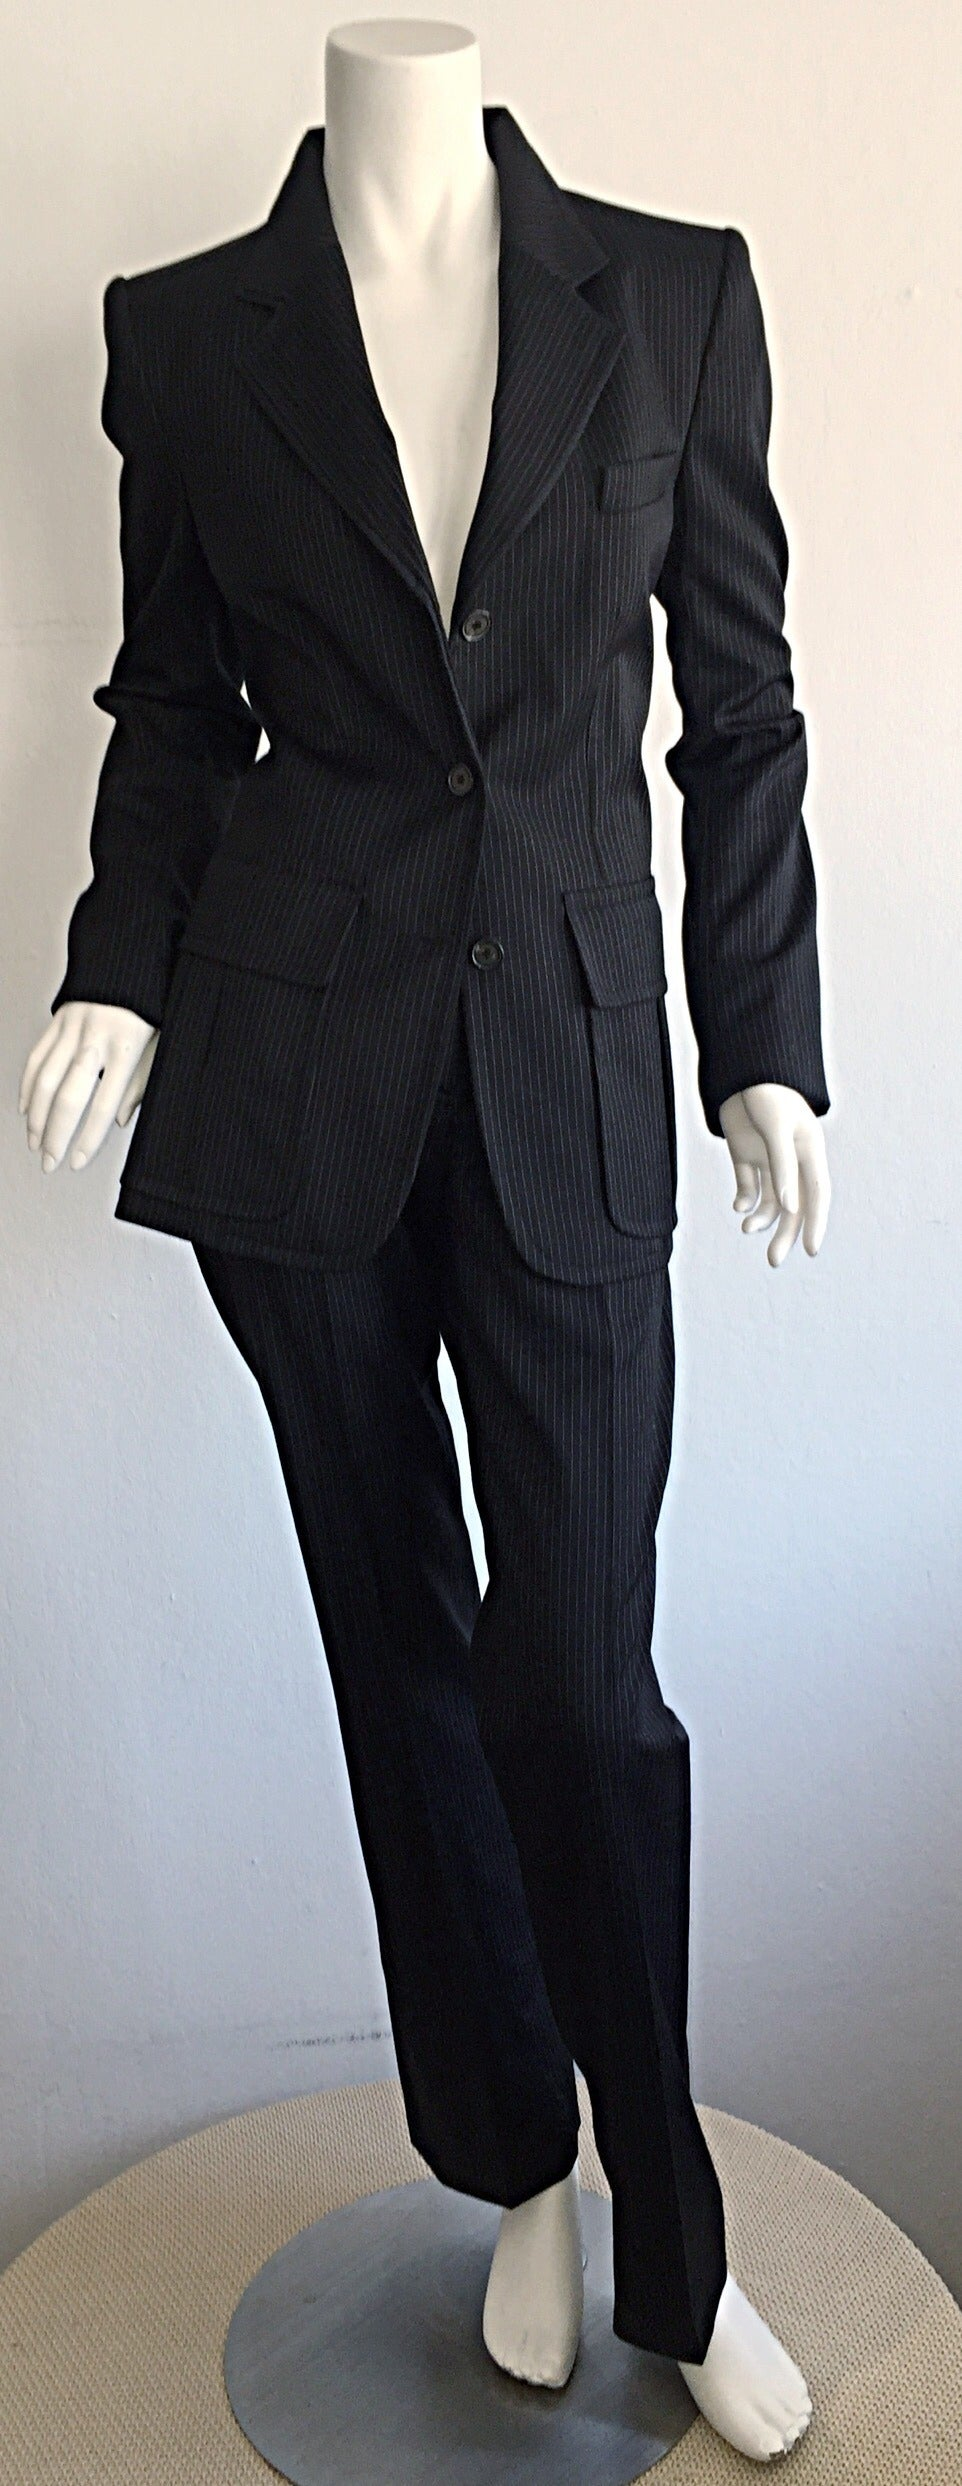 Tom Ford for Yves Saint Laurent Black + White Pinstripe Le Smoking Trouser Suit In New Condition For Sale In Chicago, IL